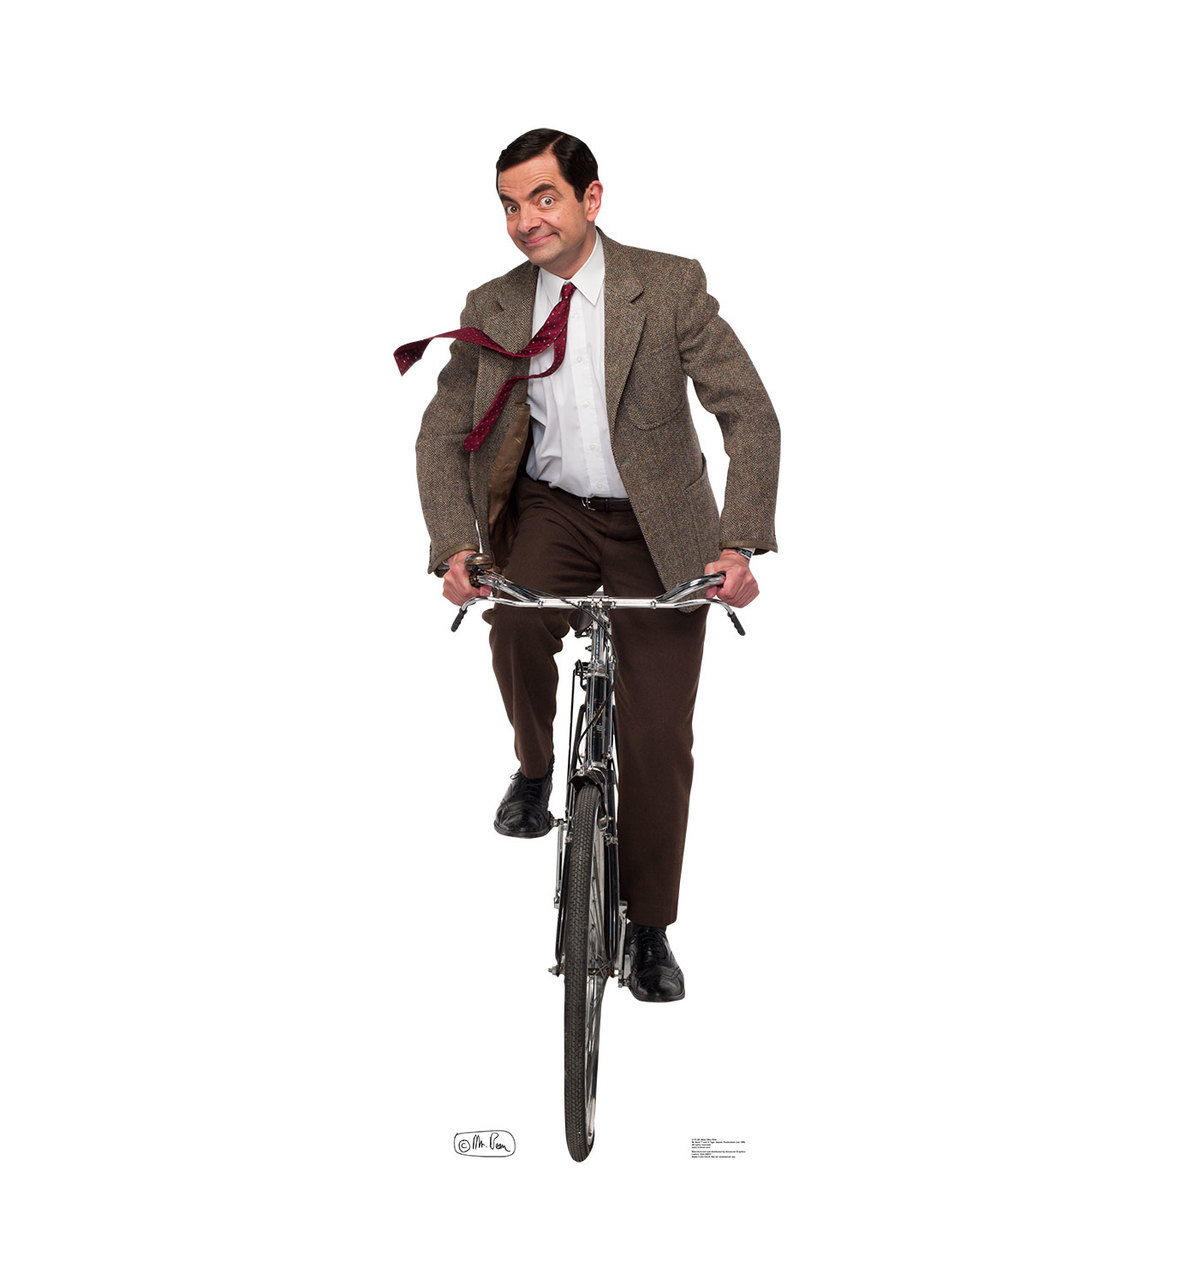 Mr. Bean Bike Ride - Cardboard Cutout